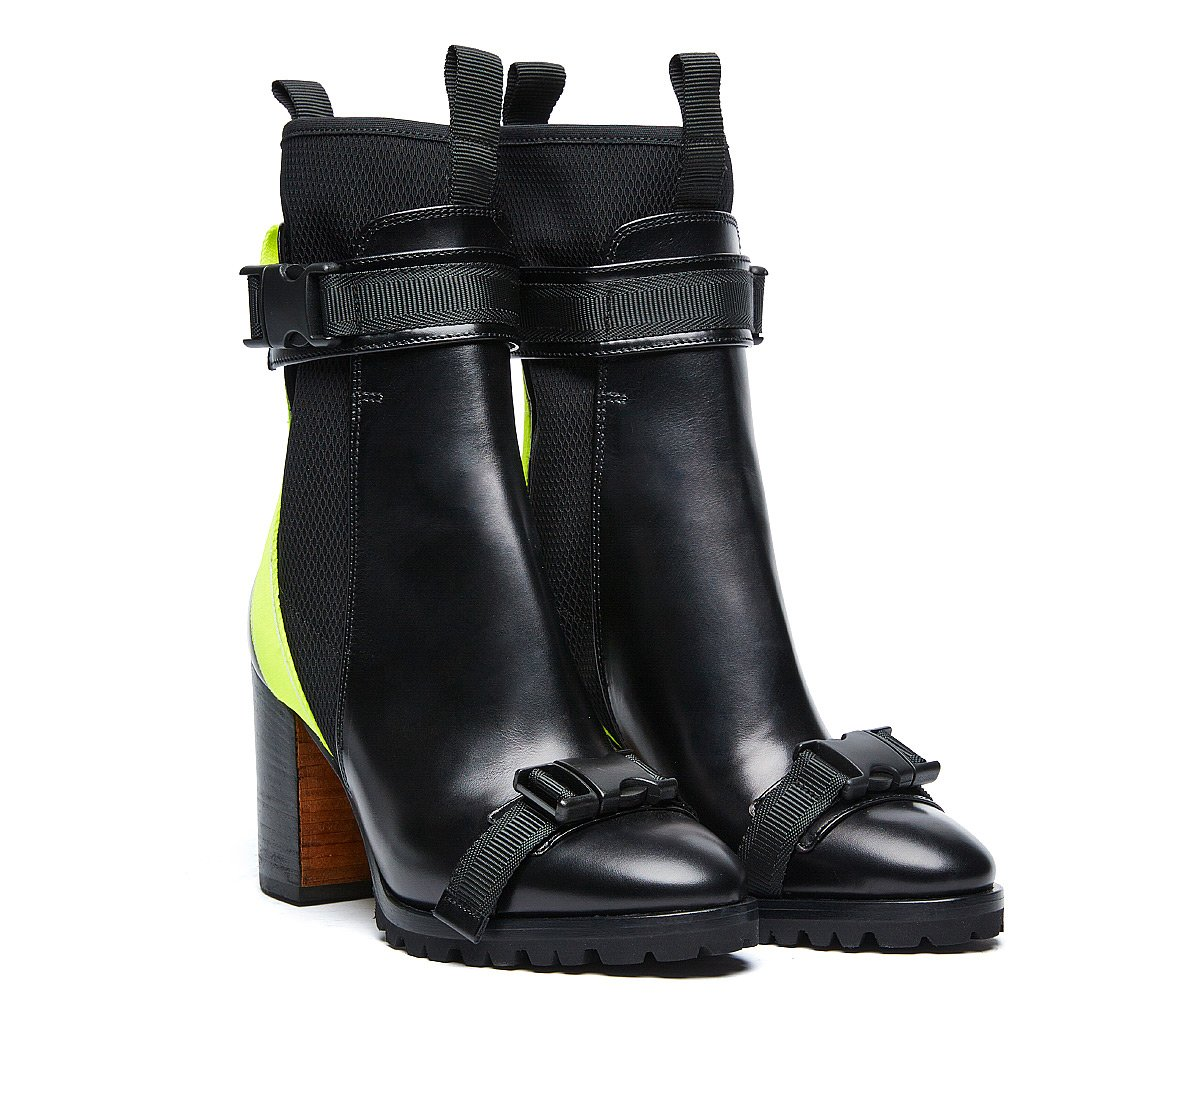 Barracuda ankle boots in luxury calf leather